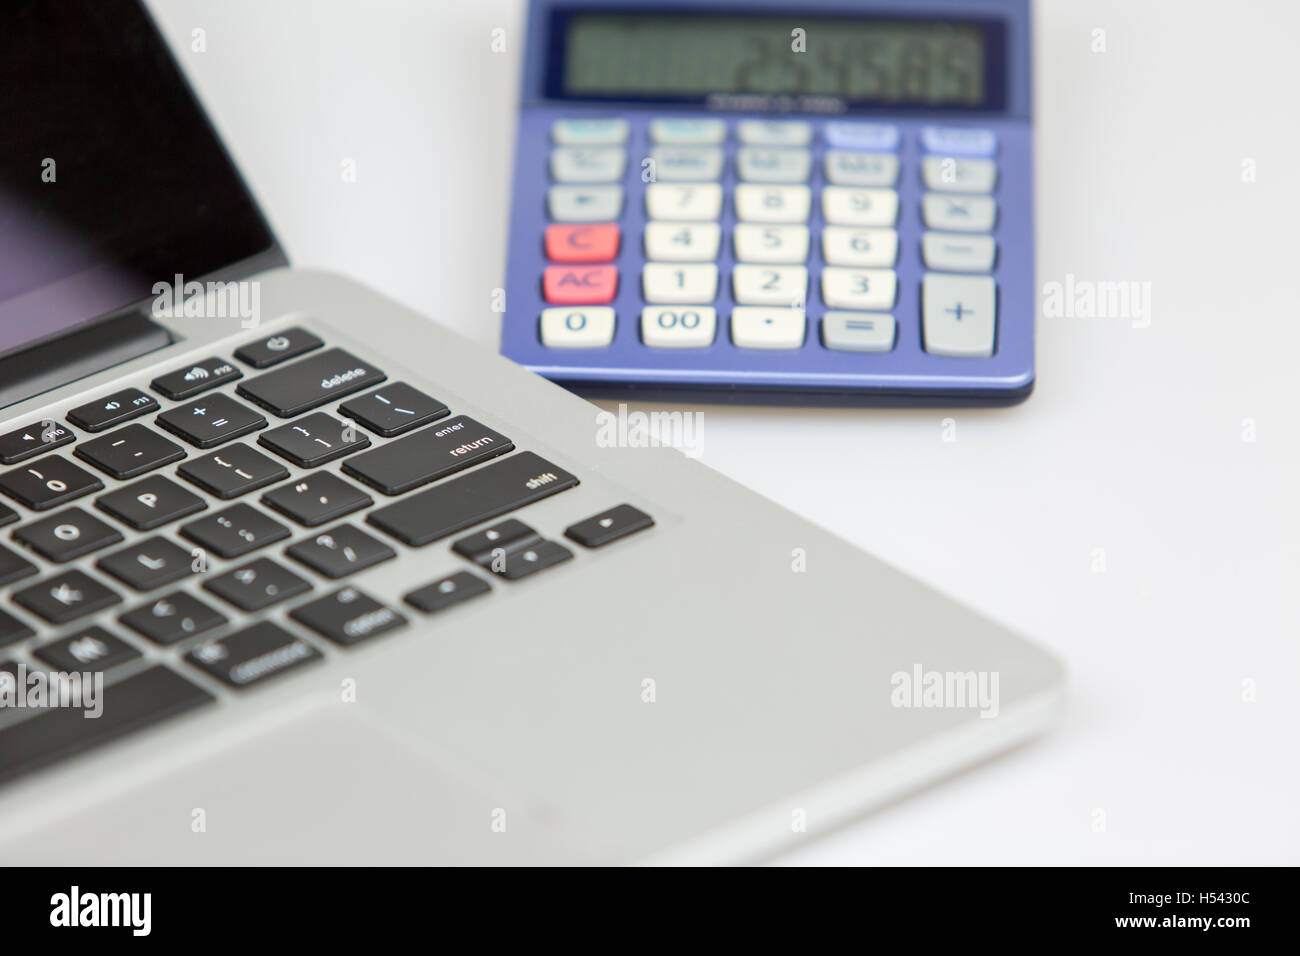 Calculator Watch Stock Photos Images Alamy Circuitry Of An Electronic Royalty Free Photography Laptop And On A White Background Digits Appearing Turned Off